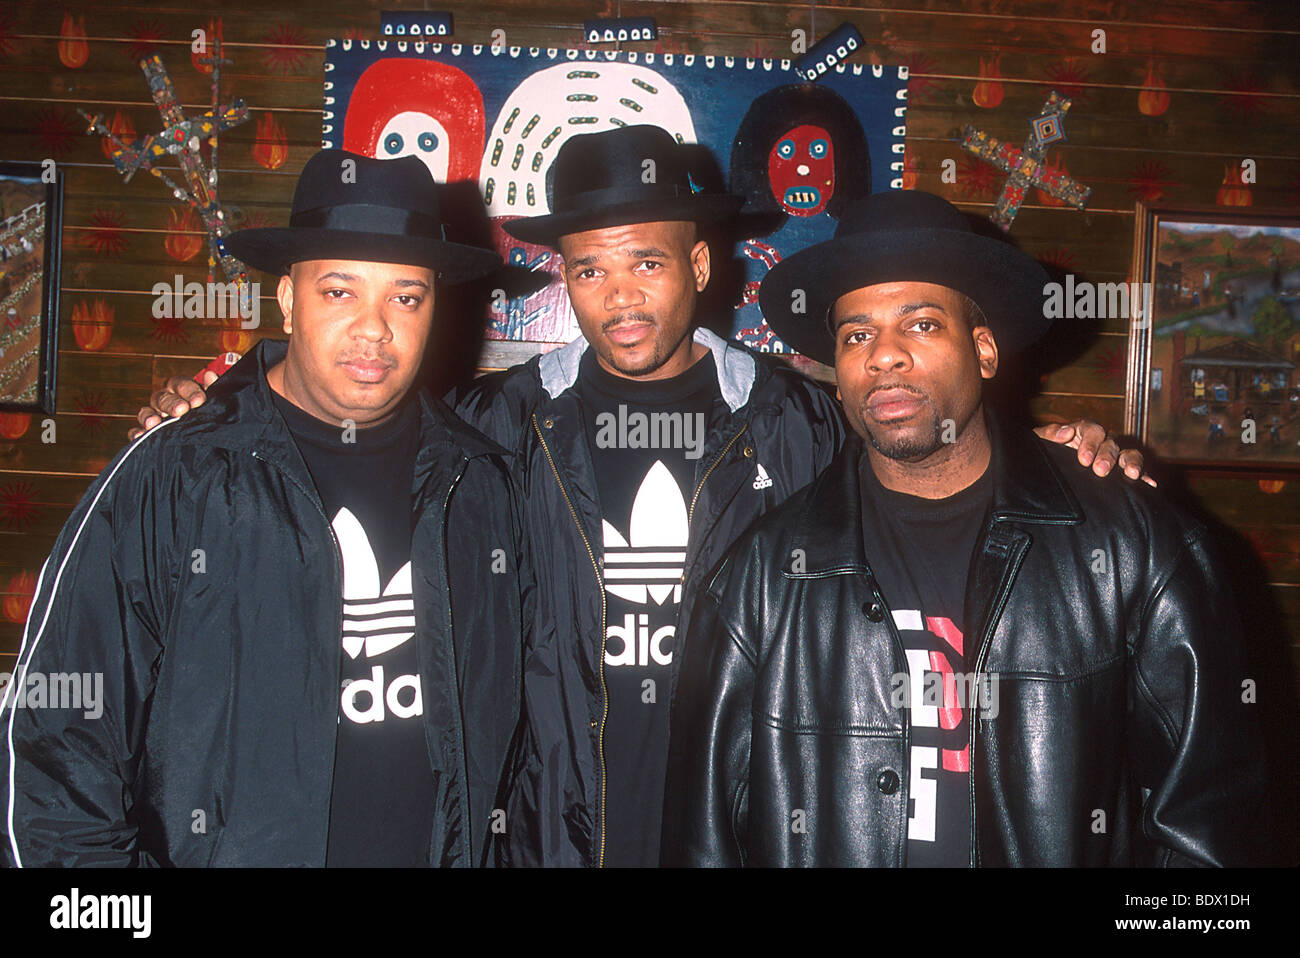 RUN DMC - US rappers from l: Joseph 'DJ Run' Simmons, Darryl 'DMC' McDaniels & Jason 'Jam - Stock Image